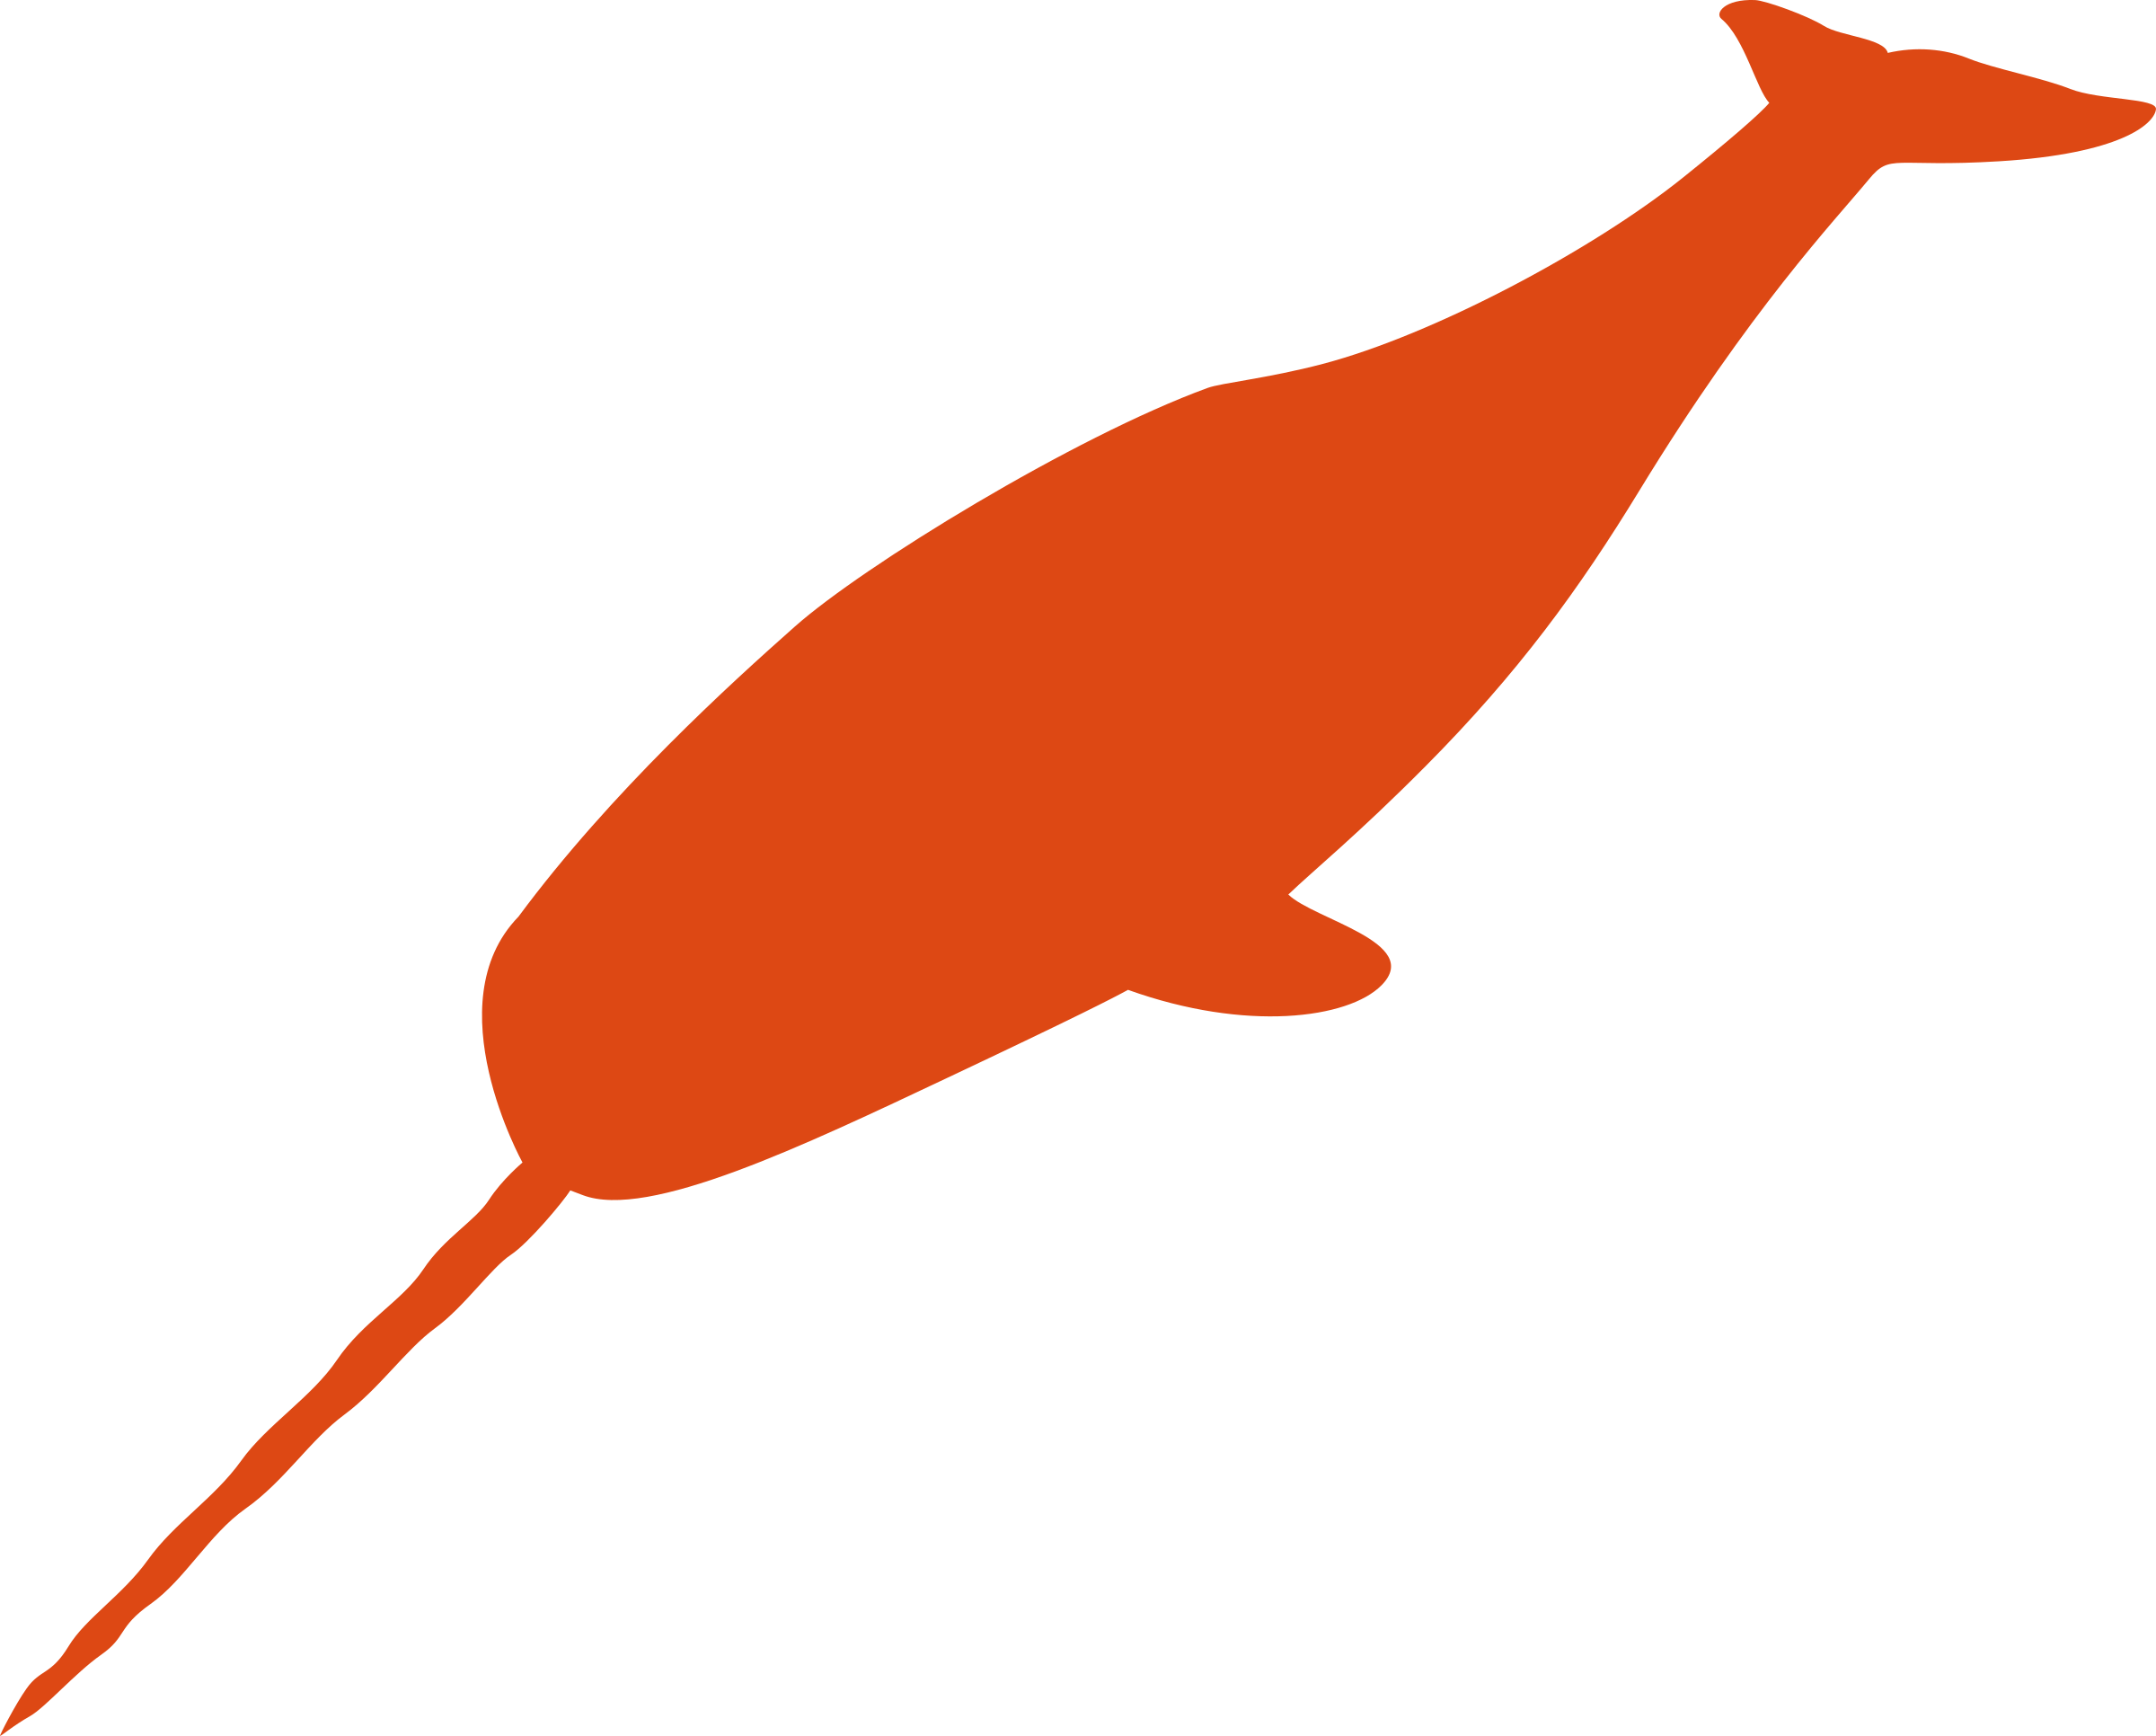 Small big image png. Narwhal clipart narwhale